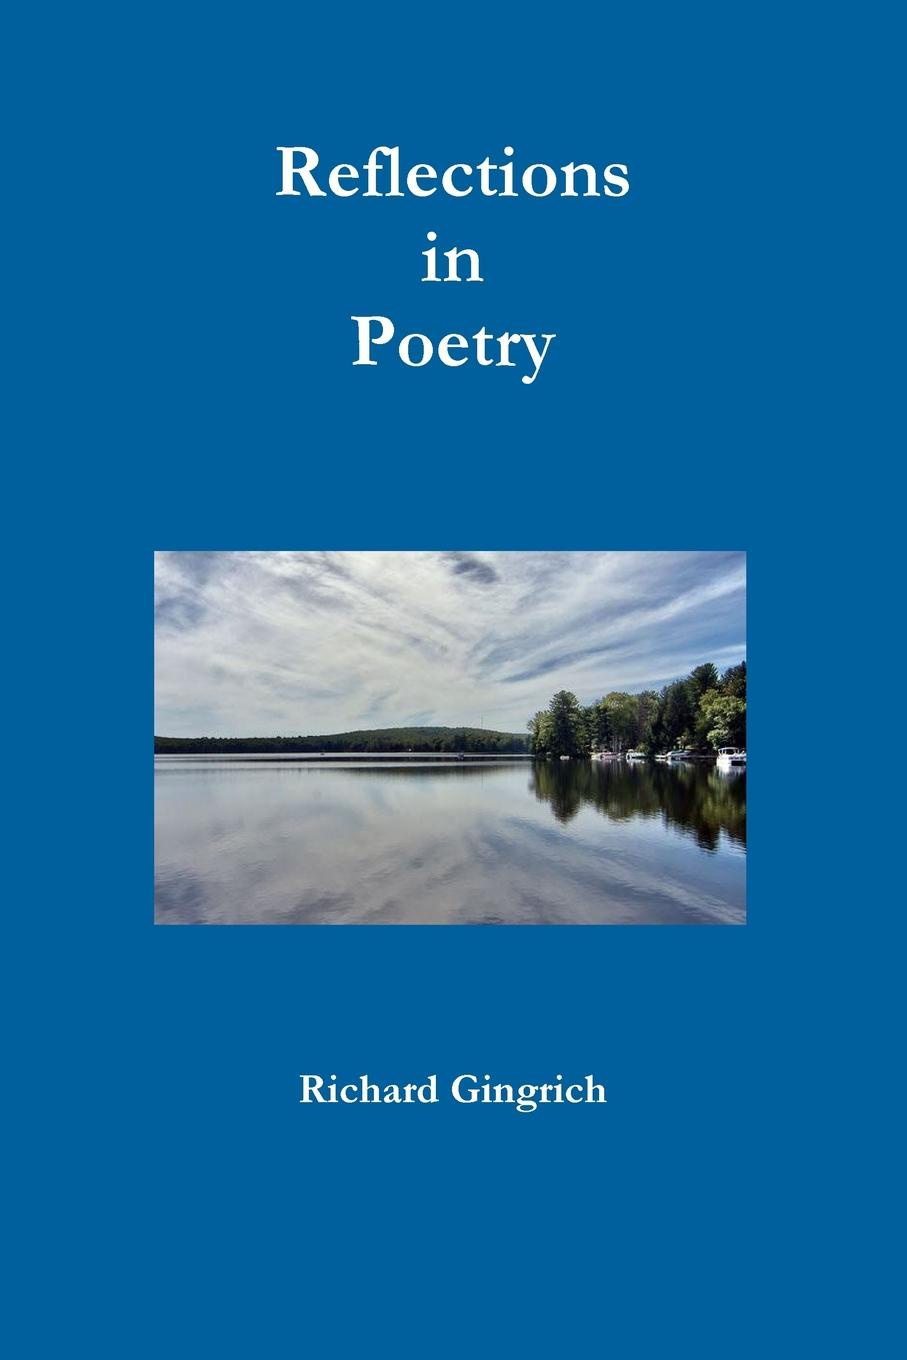 лучшая цена Richard Gingrich Reflections in Poetry